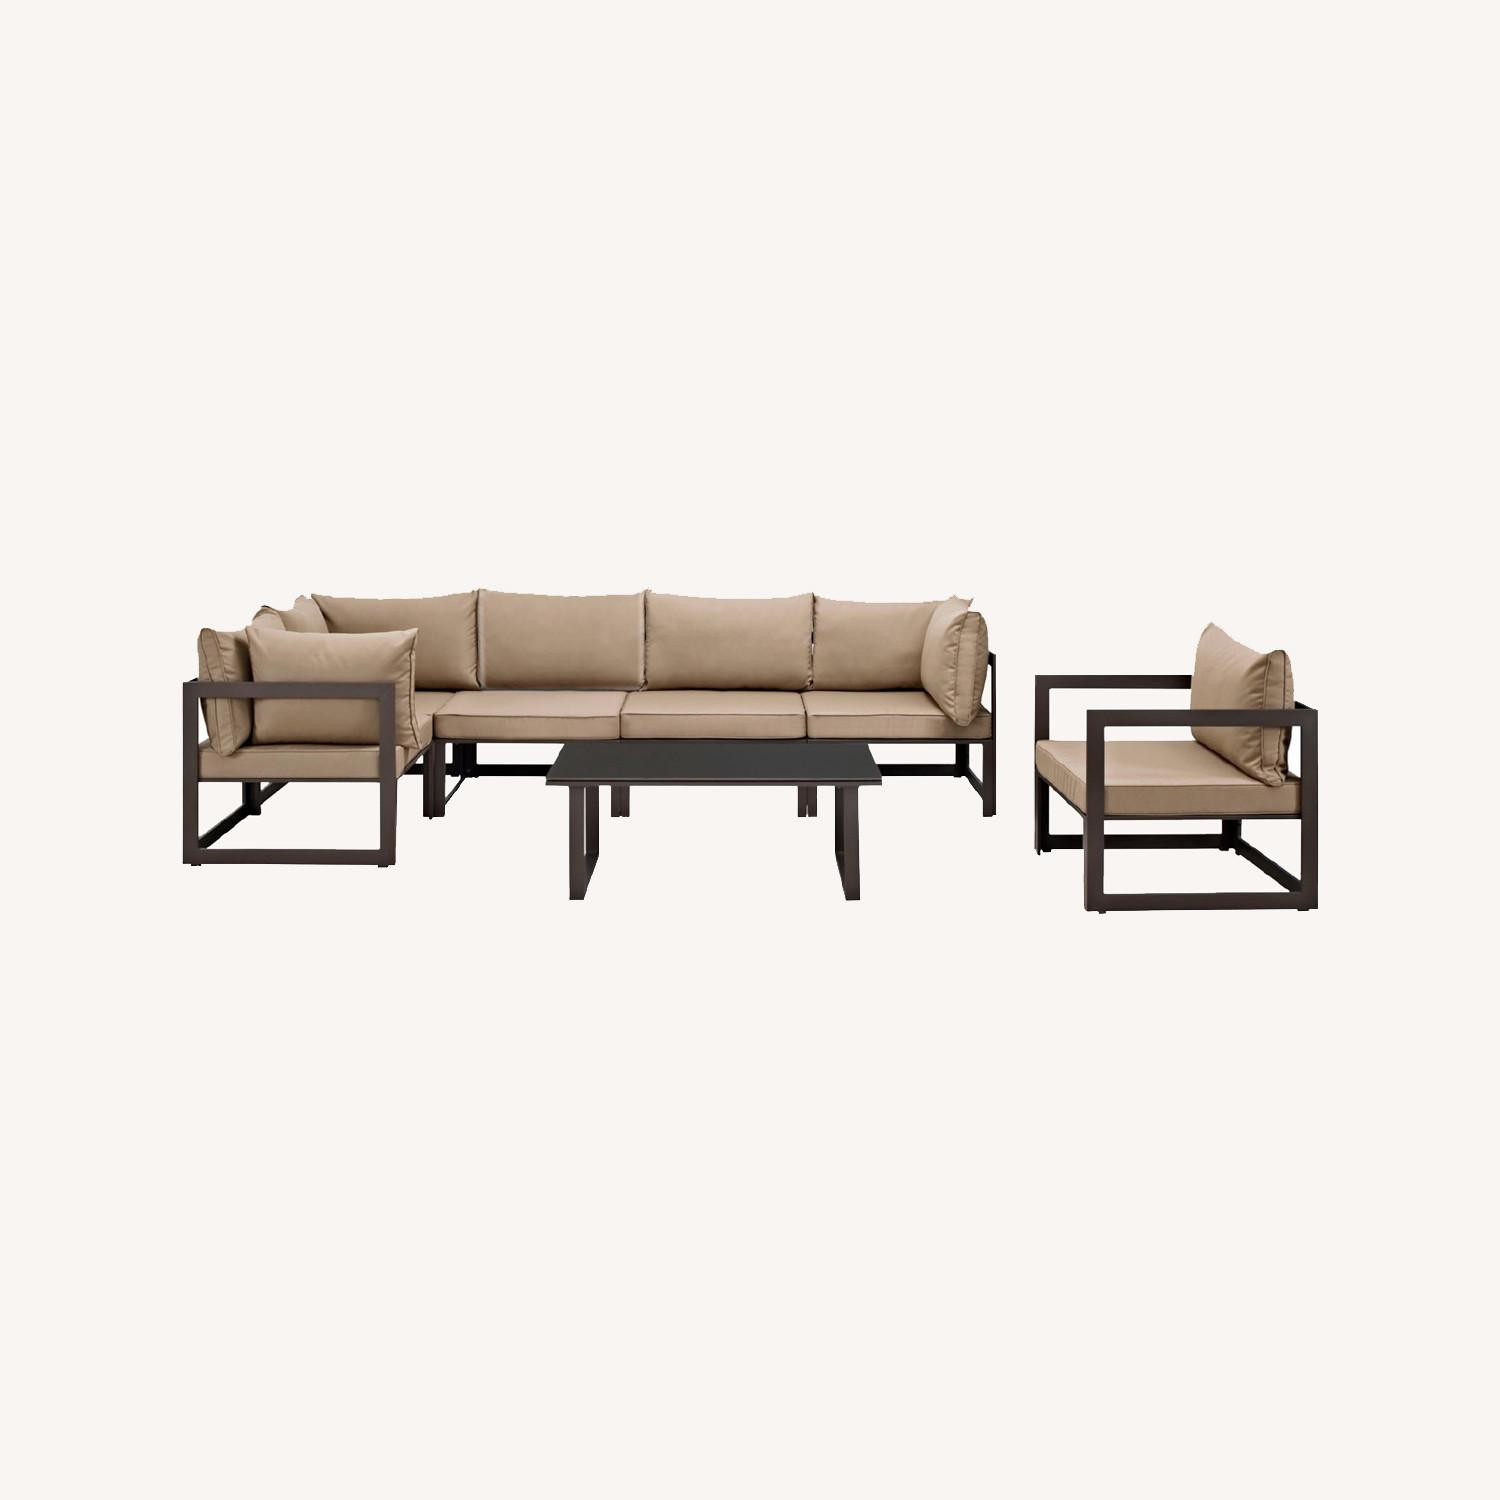 7-Piece Outdoor Sectional In Mocha & Brown Finish - image-11